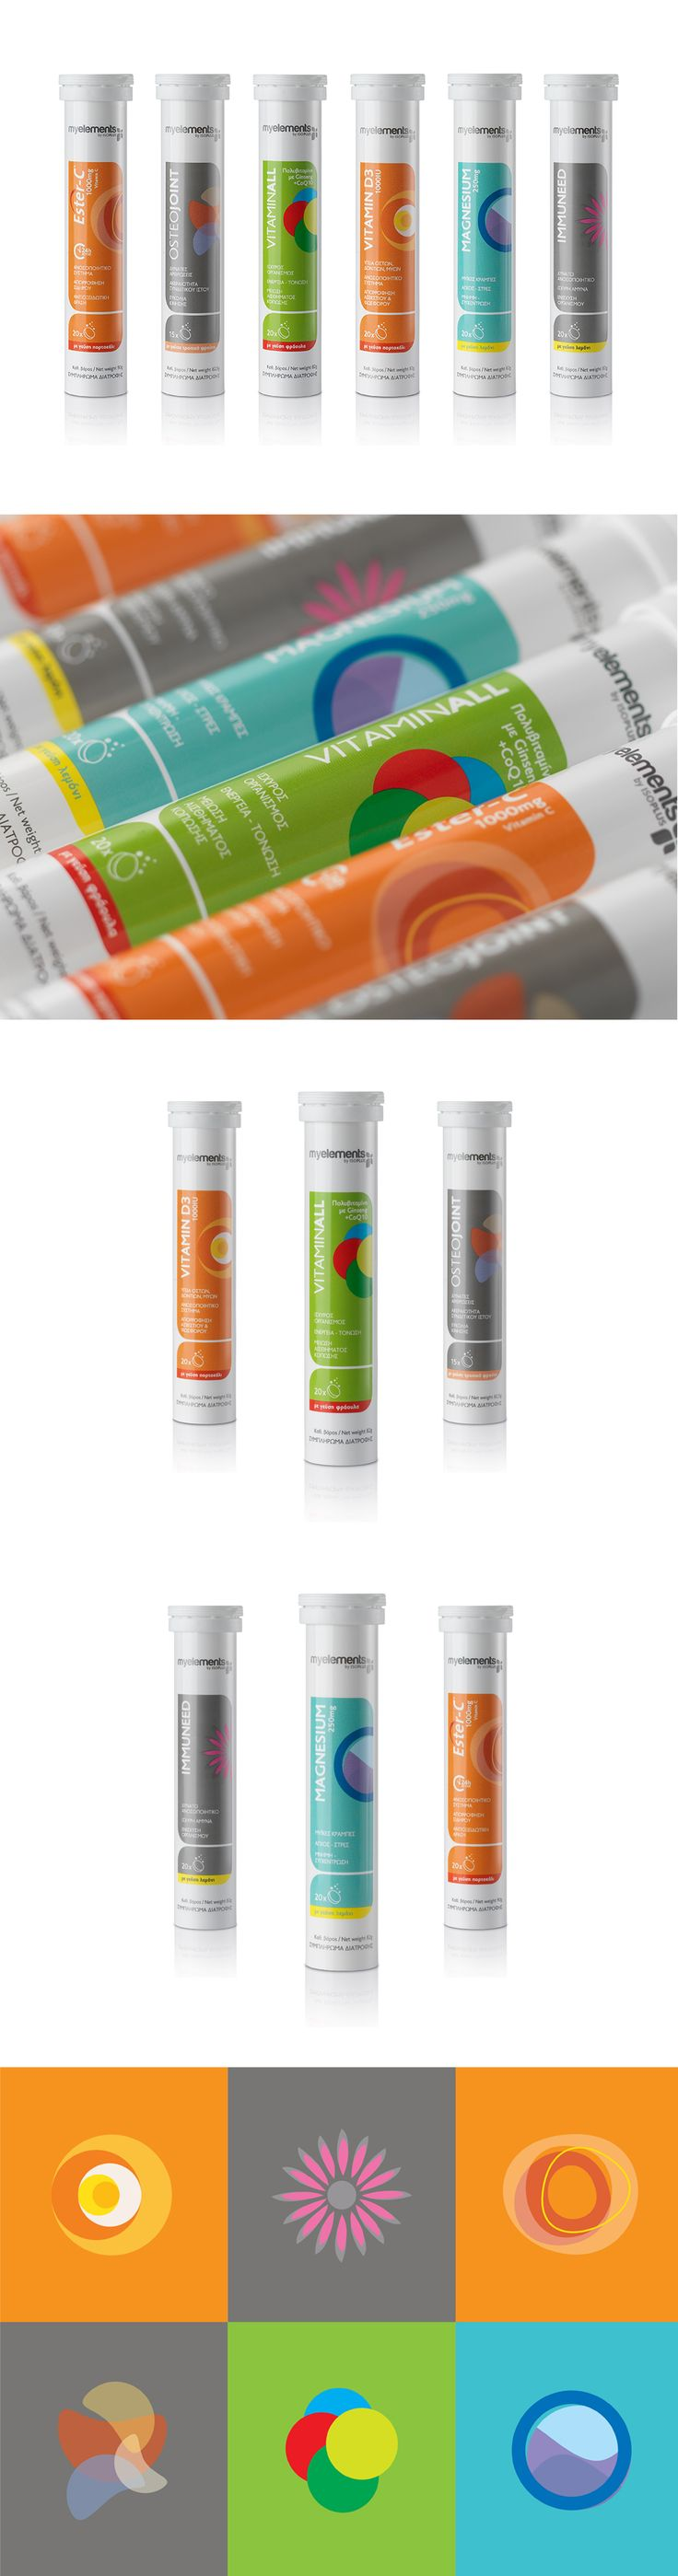 Nutritional supplements myelements designed by ISOPLUS by 2yolk